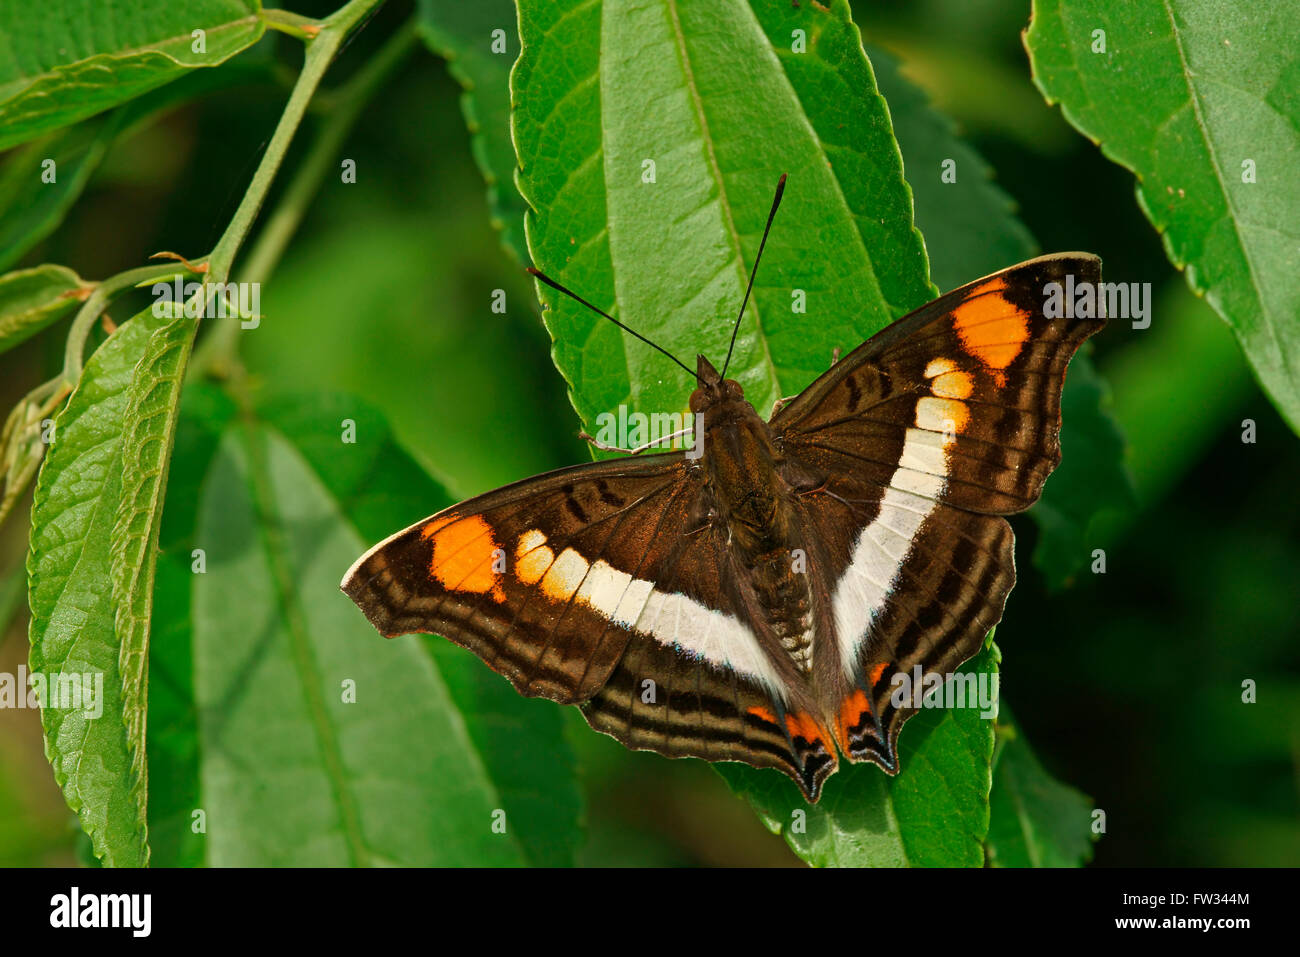 Nymphalidae (Nymphidae) Tropical butterfly (Doxocopa linda), Iguazú National Park, Paraná, Brazil - Stock Image